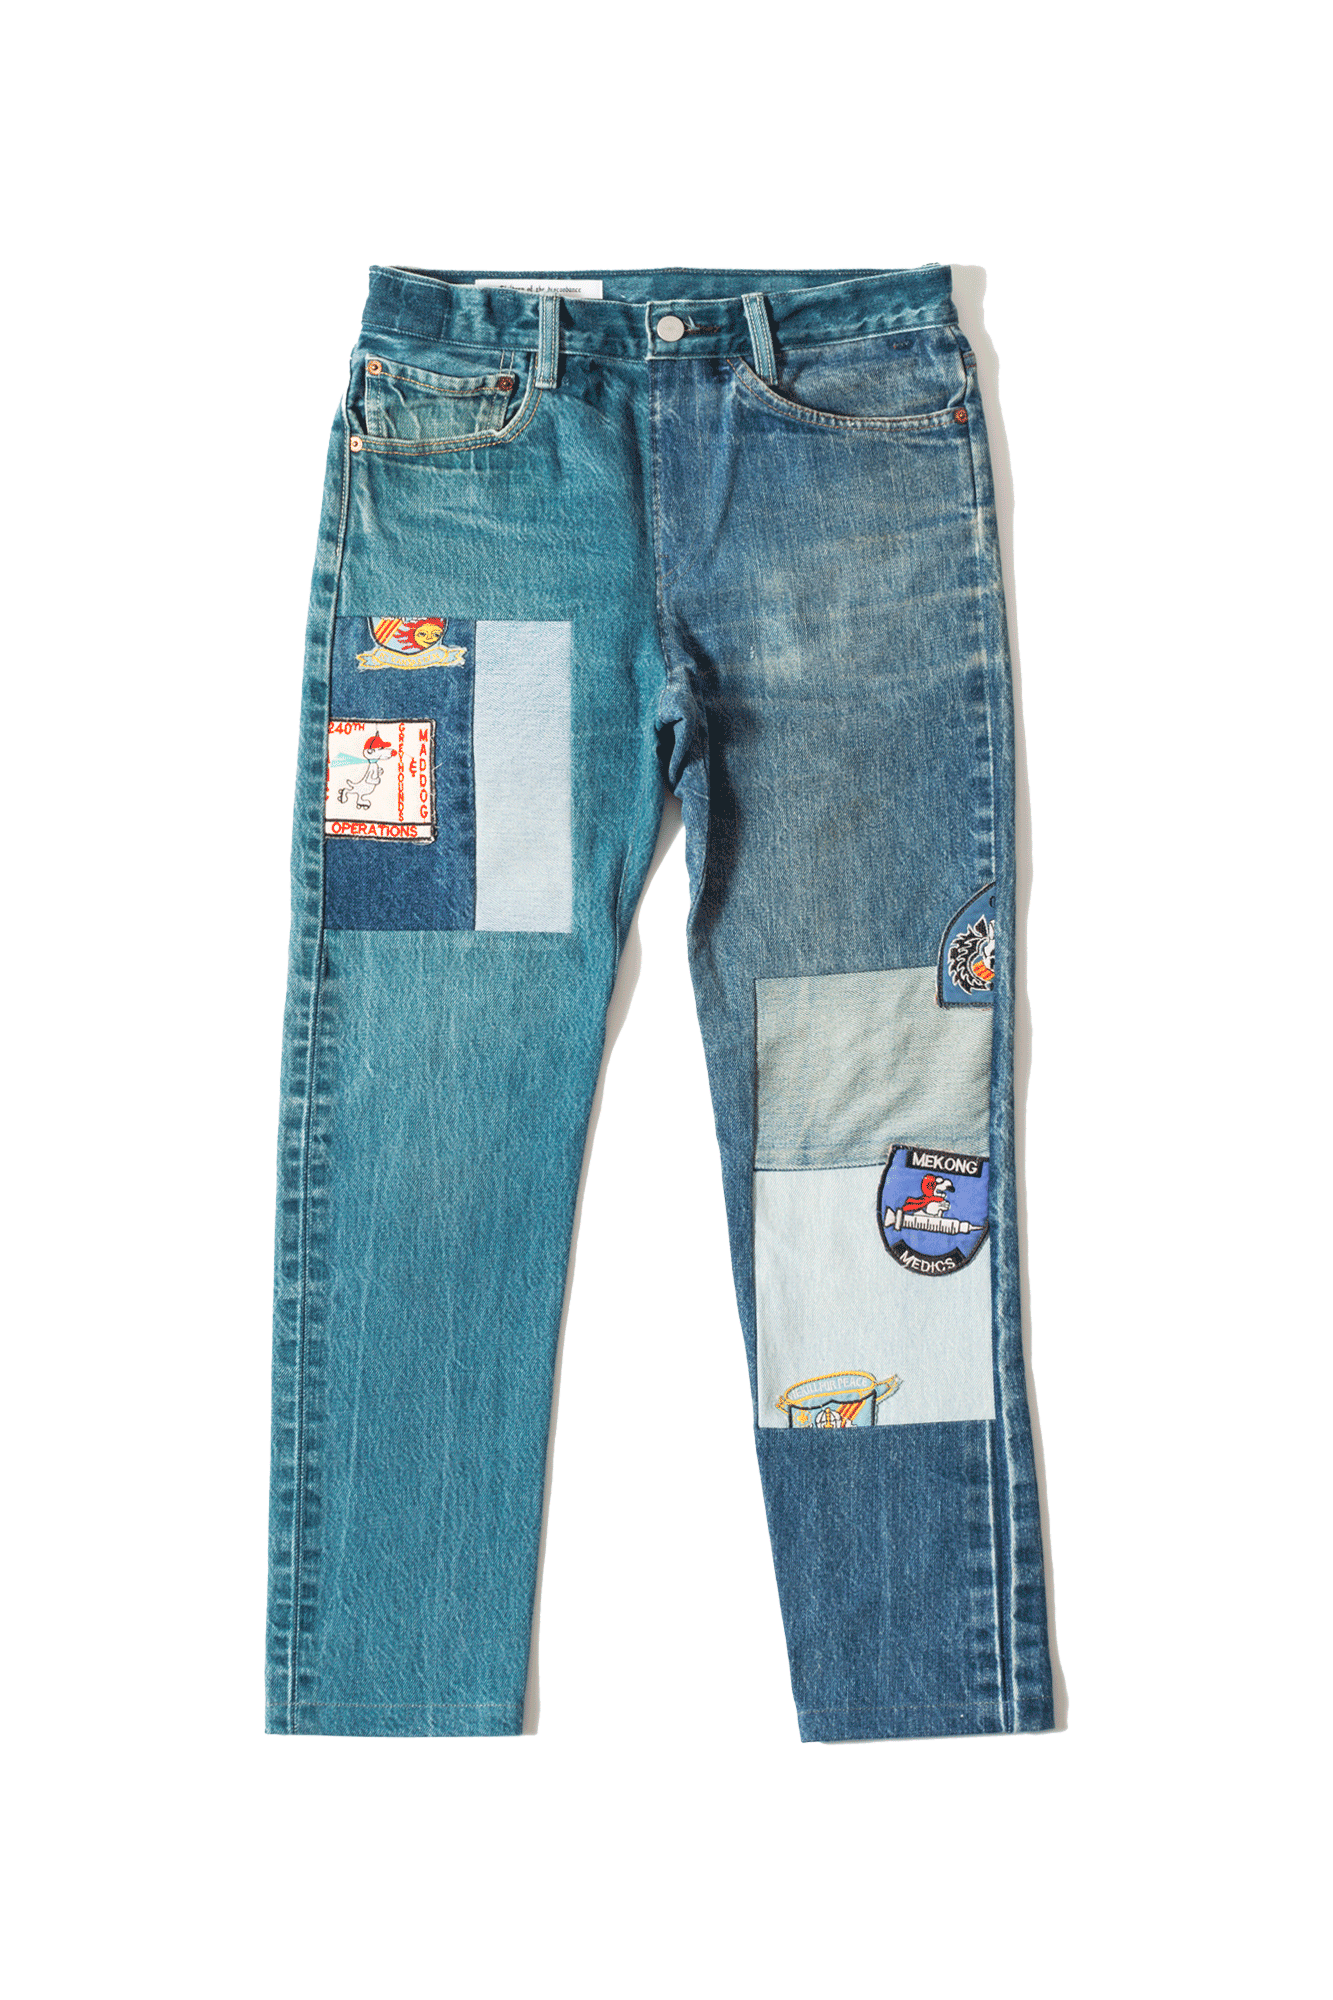 Children Of The Discordance Jeans Denim Pants Vintage Fabric Blu COTDNY#PT301#NAVY#0 - One Block Down